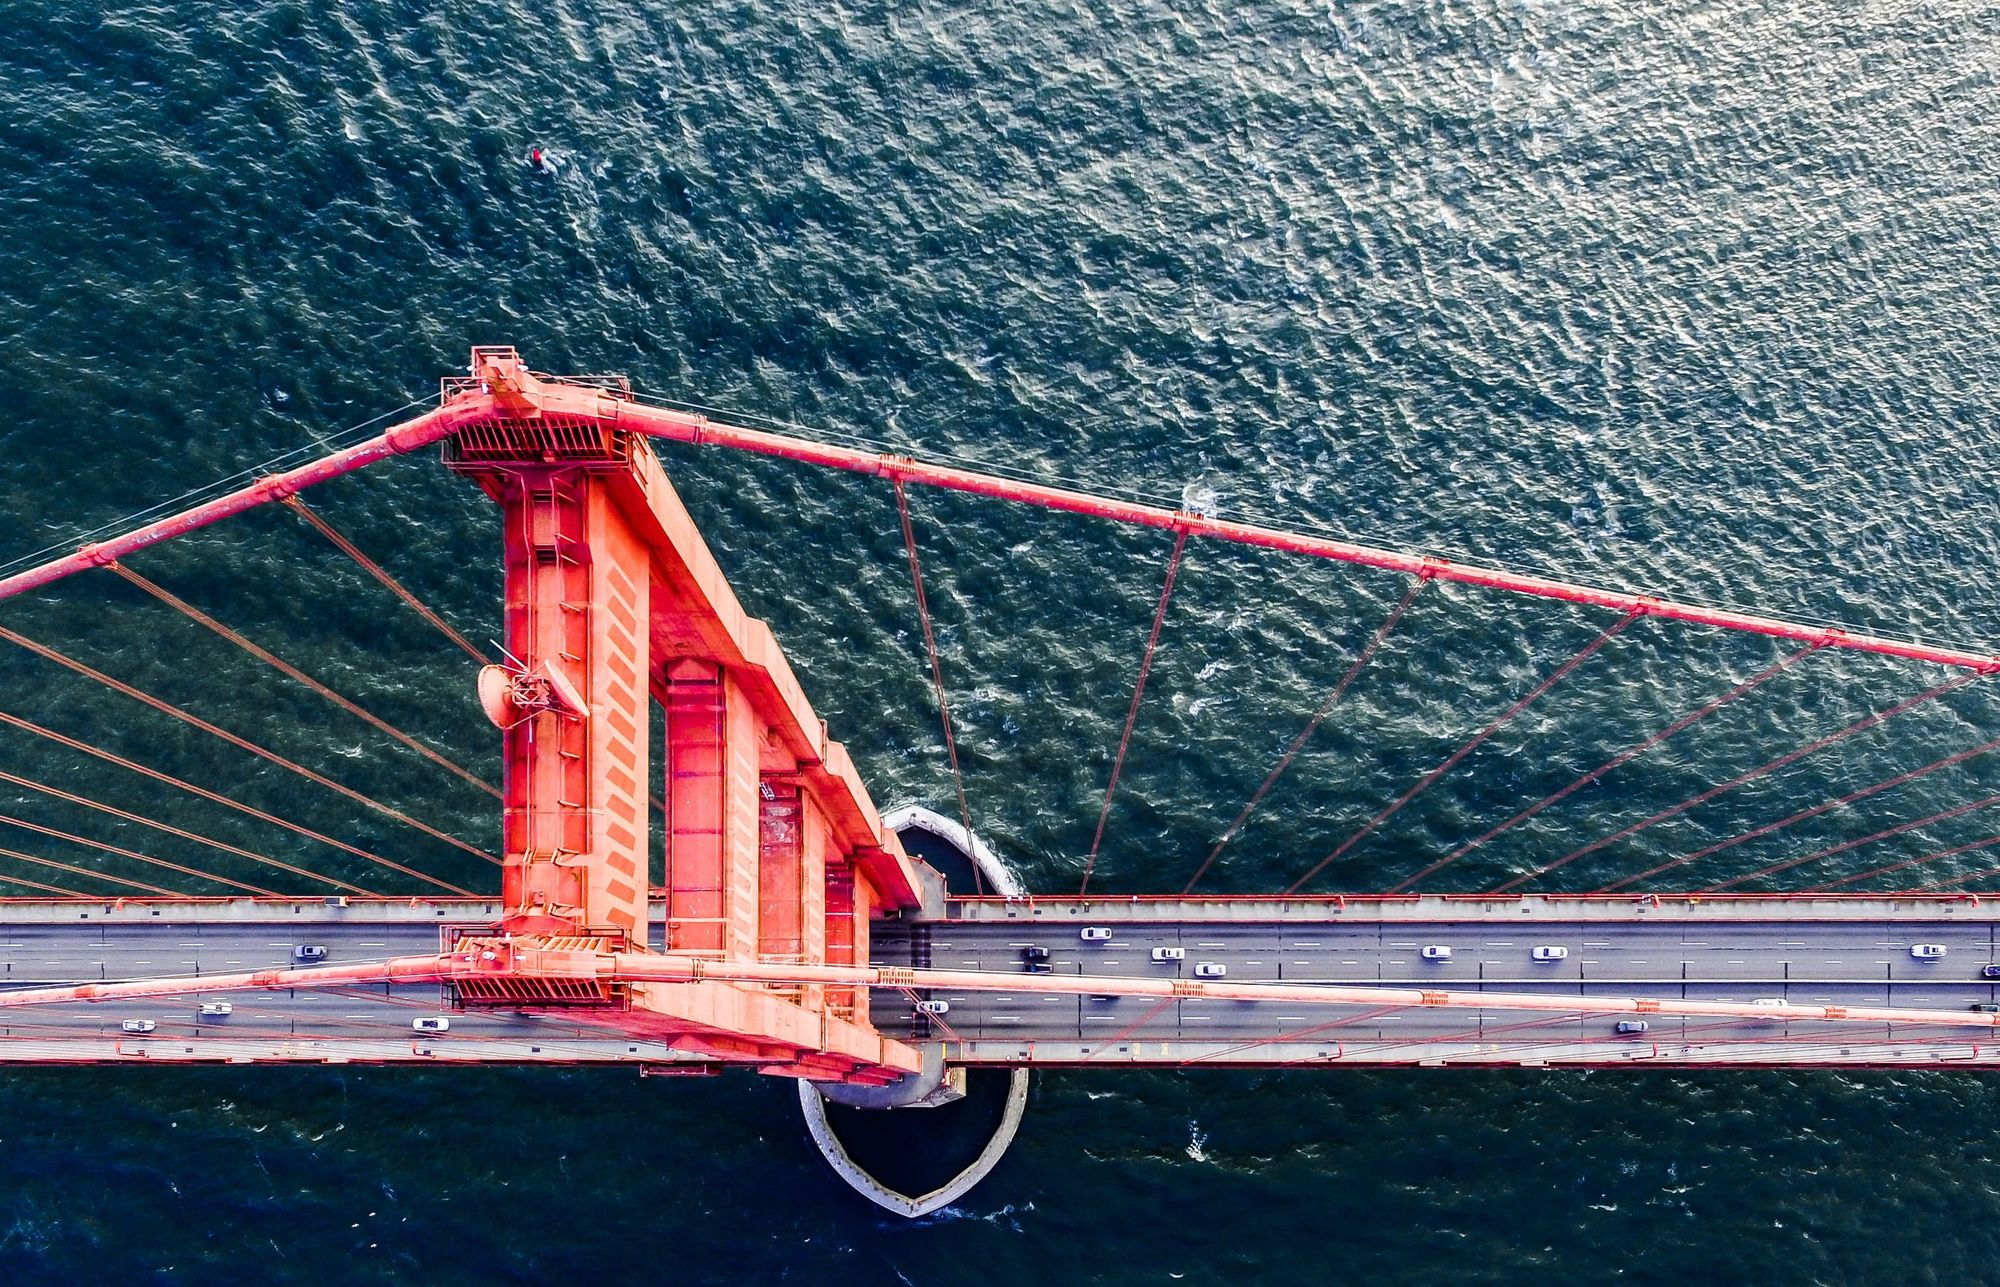 Get amazing footage by using a drone